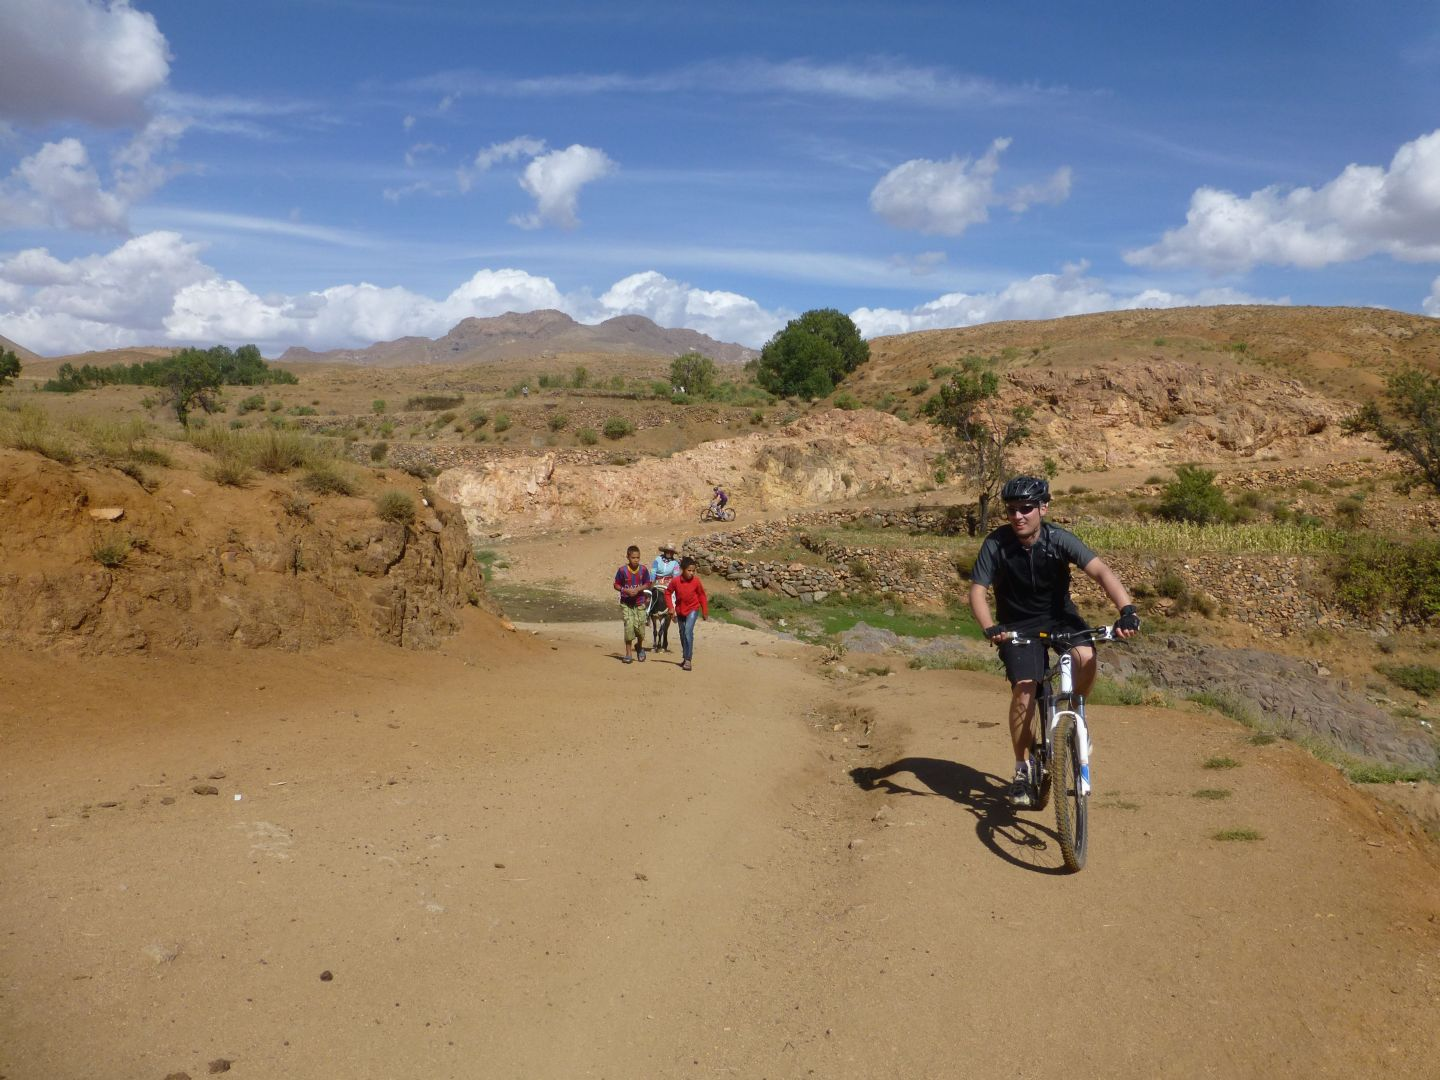 morocco traverse 1 (2).jpg - Morocco - High Atlas Traverse - Mountain Biking